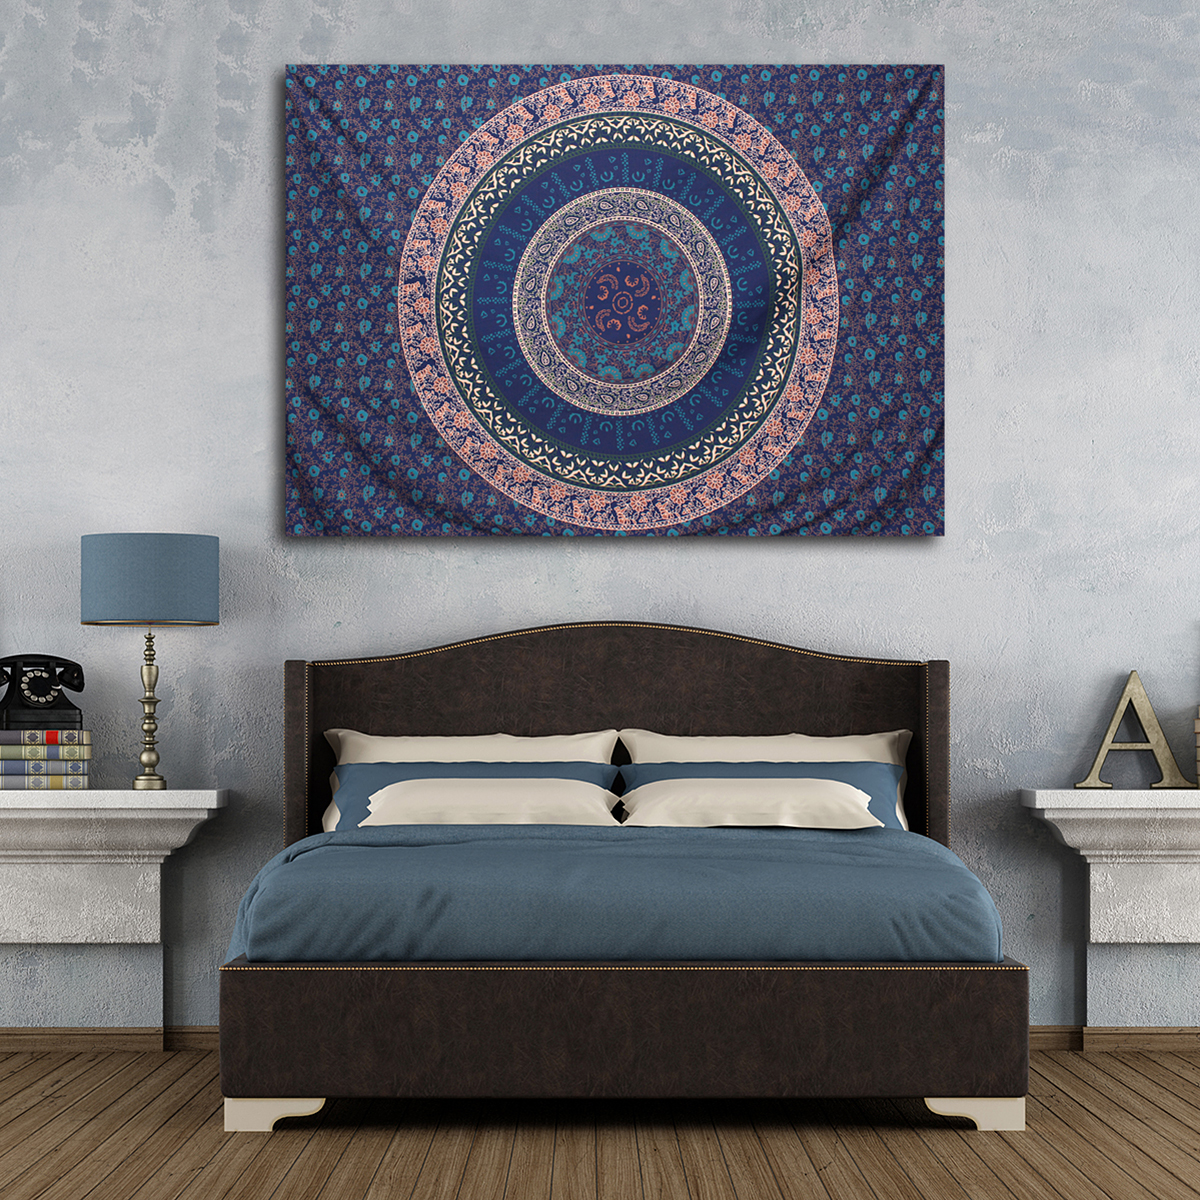 Indian Hippie Queen Tapestry Mandala Bohemian Wall Hanging Bedspread Dorm Throw by